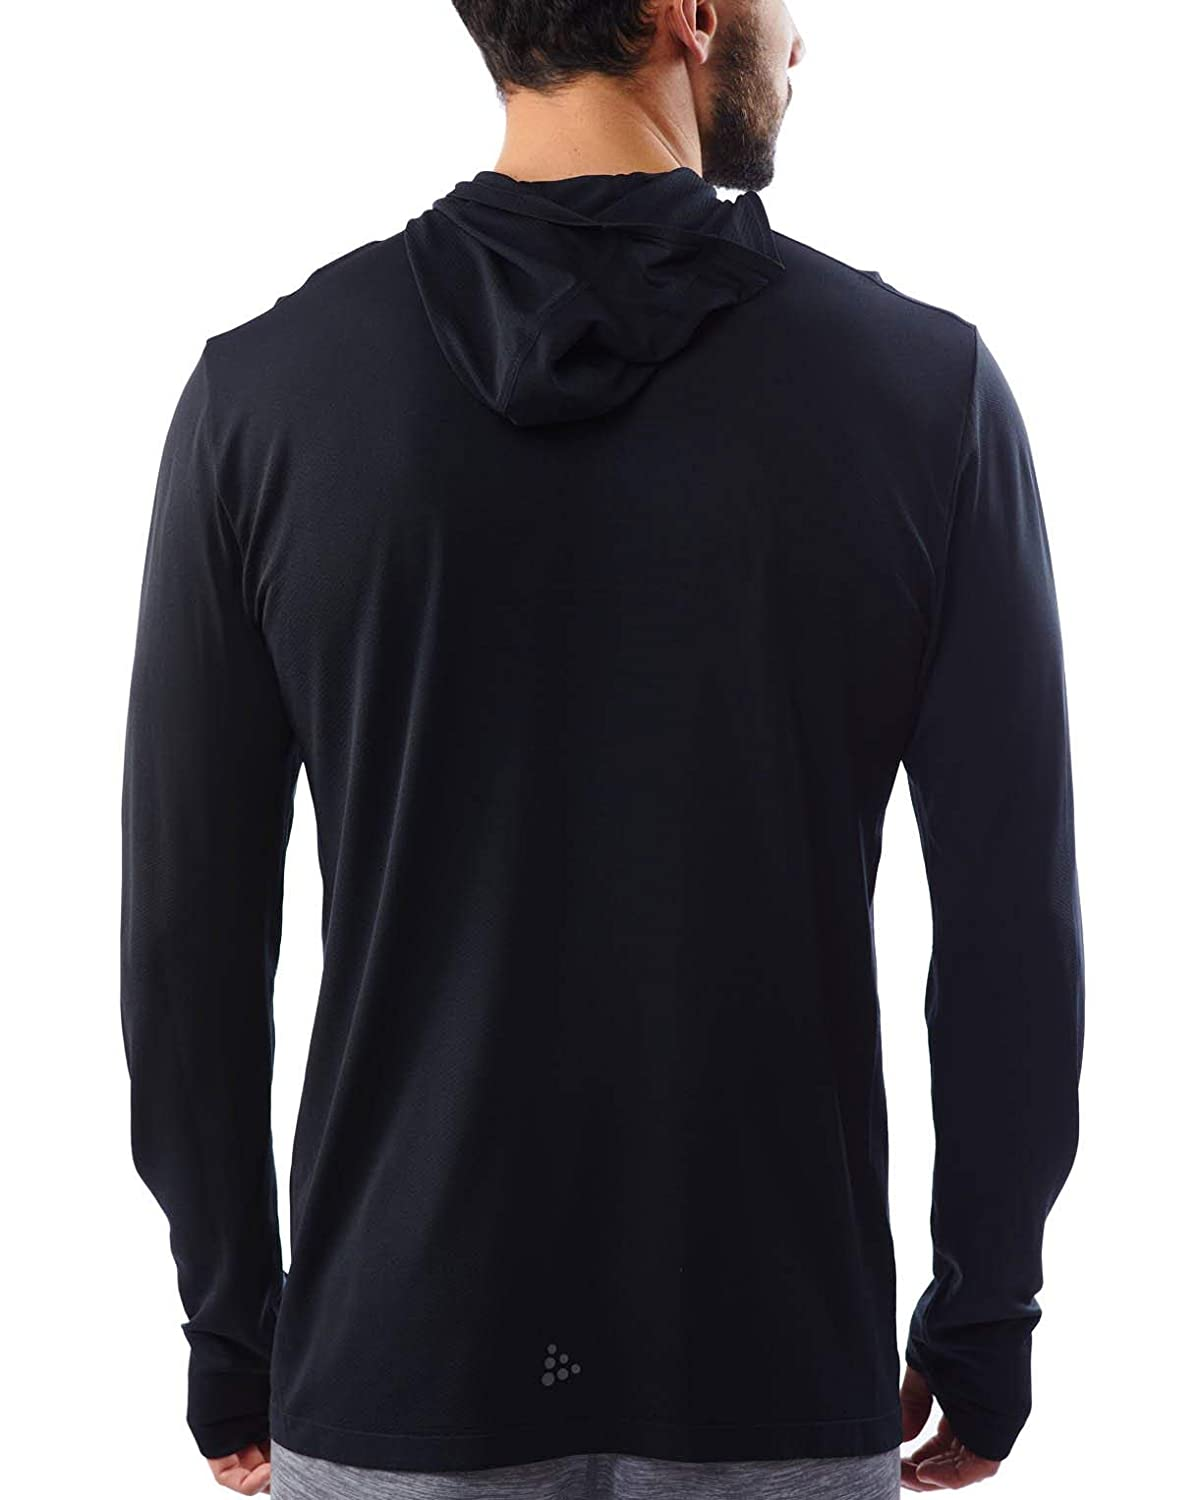 Spartan Race by Craft Core Fuseknit LS Hood Mens